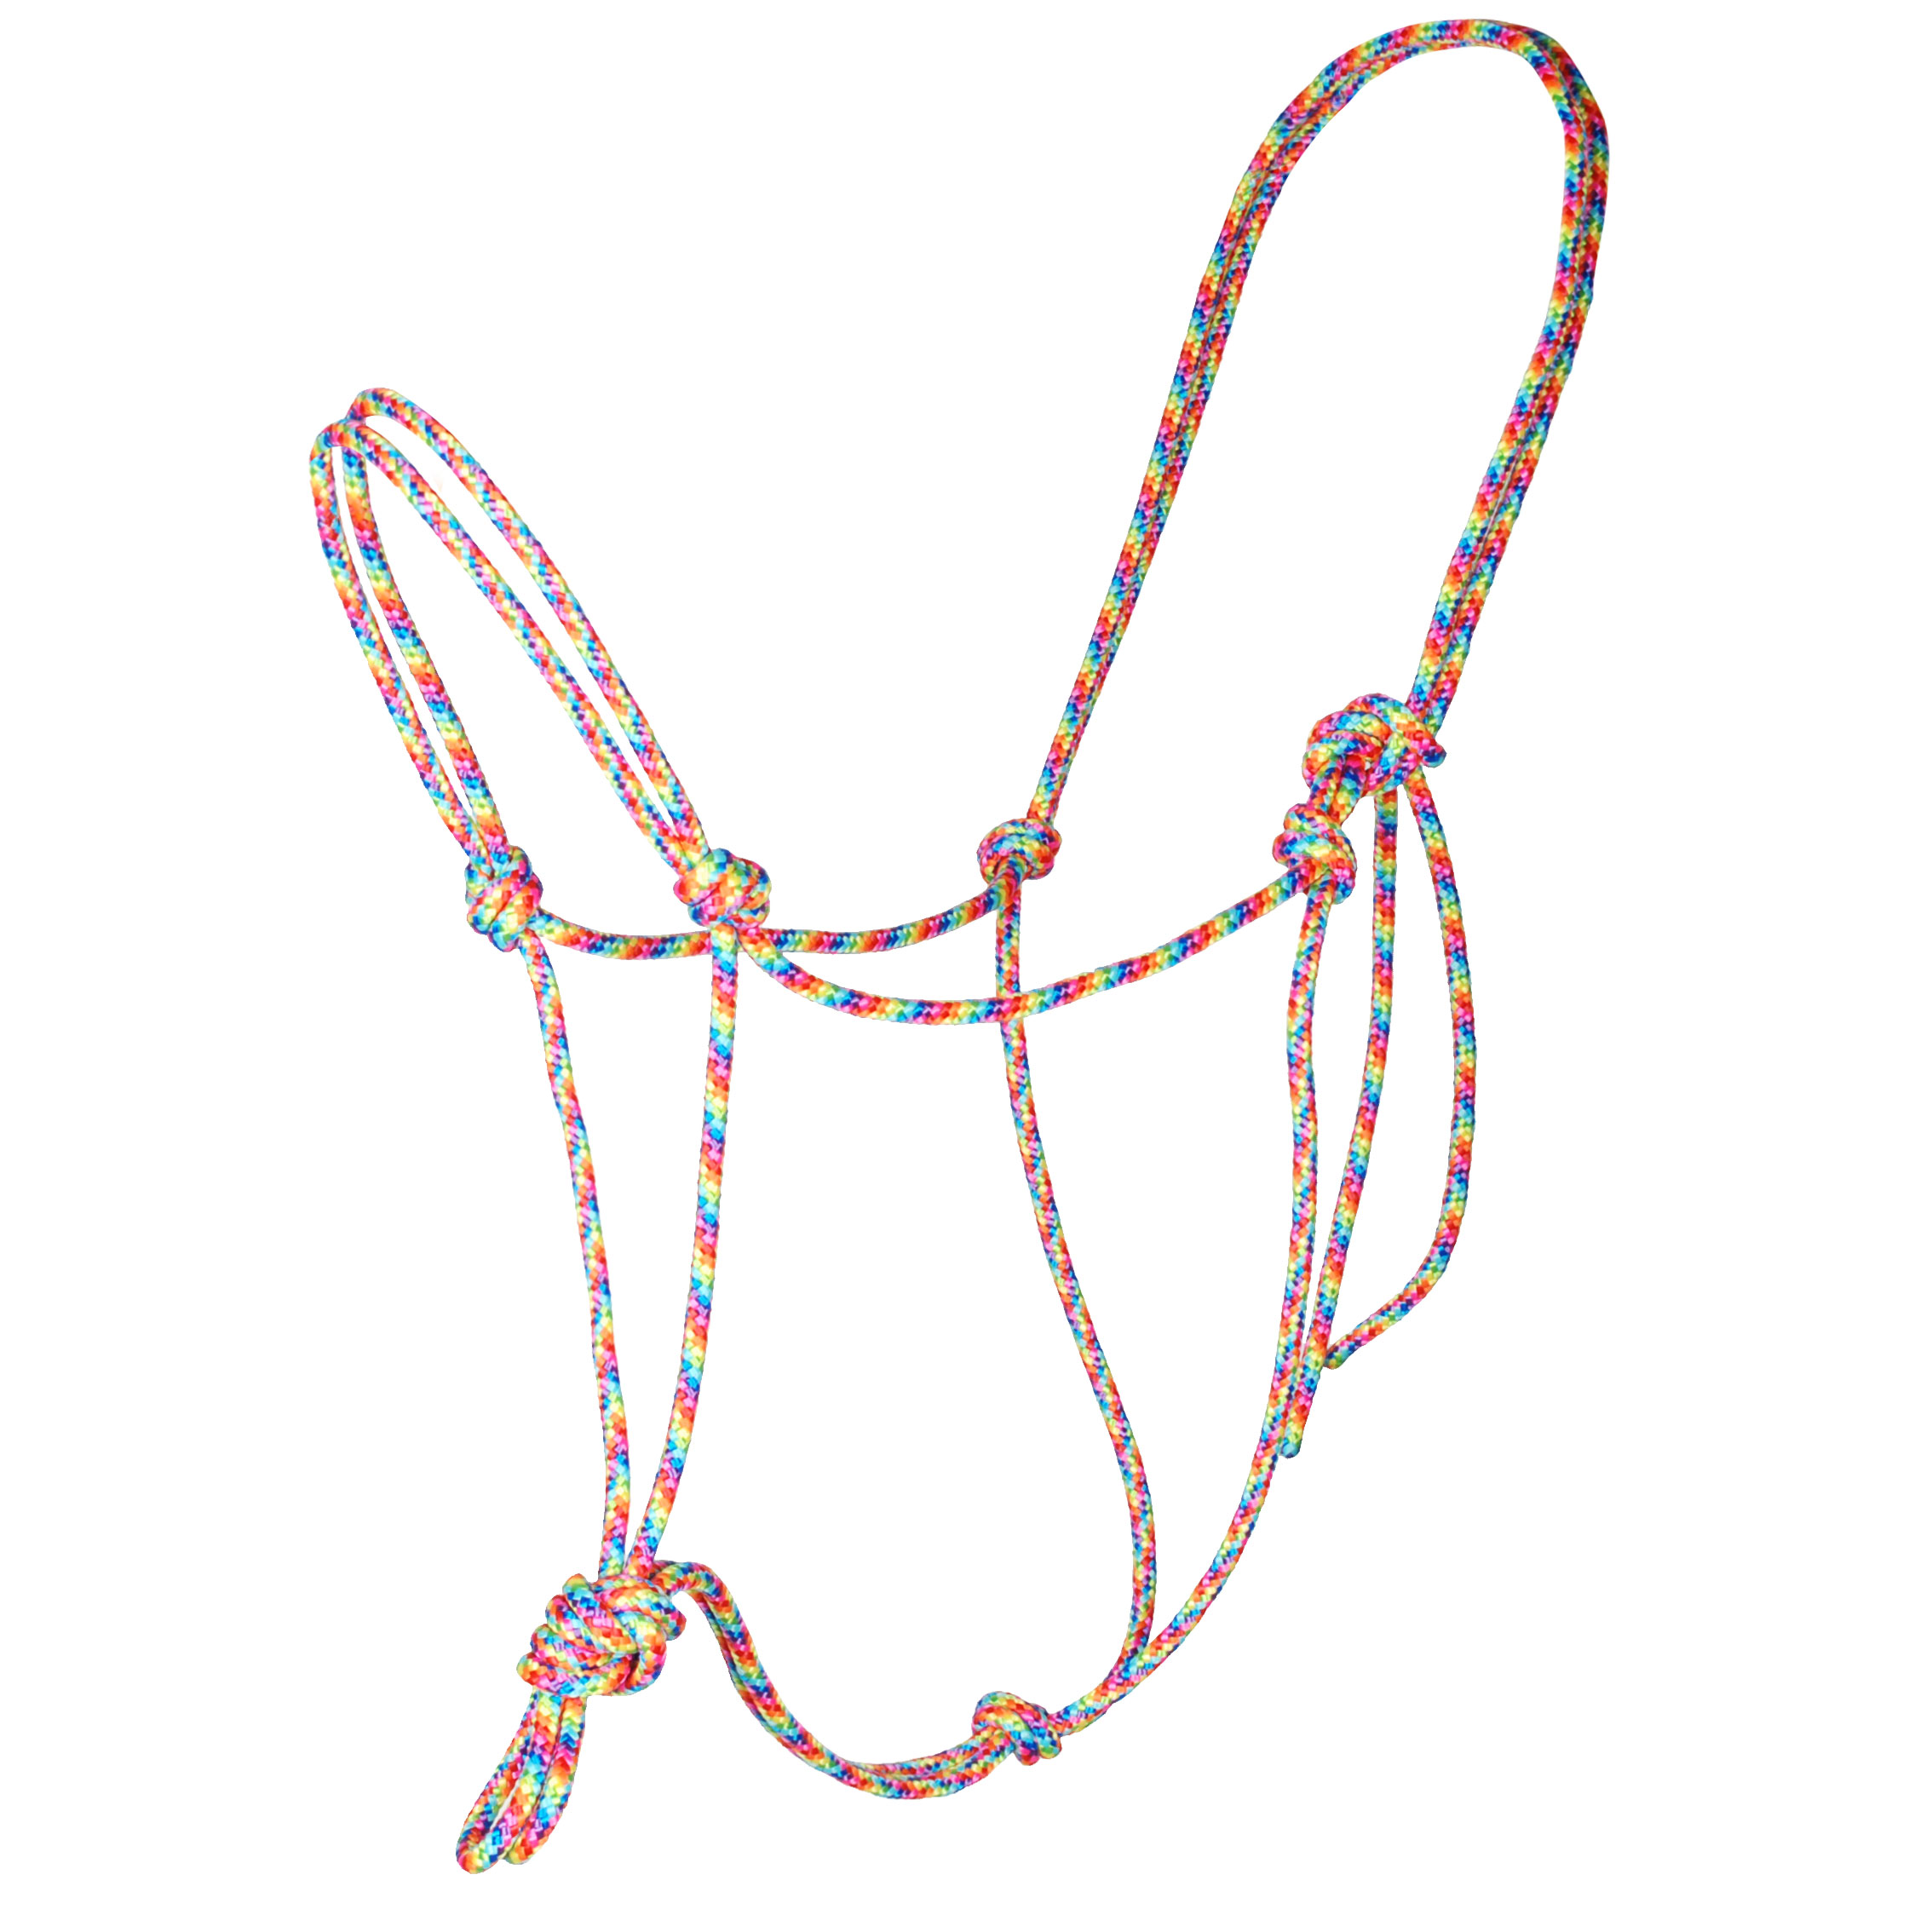 Horse Charms touwhalster multi maat:full